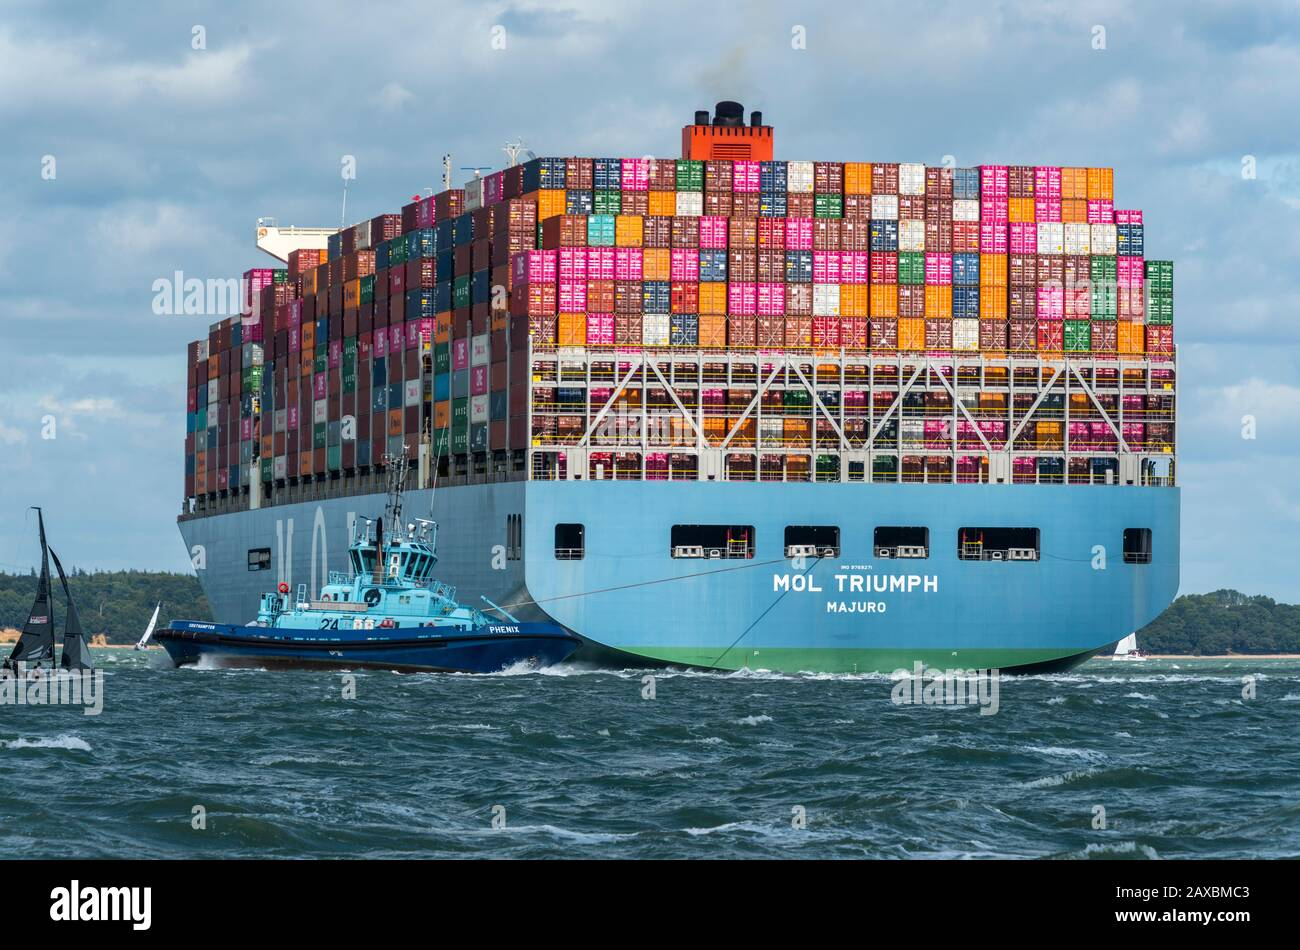 a large container cargo ship entering the port of southampton docks with a tug helping to steer the large massive seagoing vessel in the solent. Stock Photo